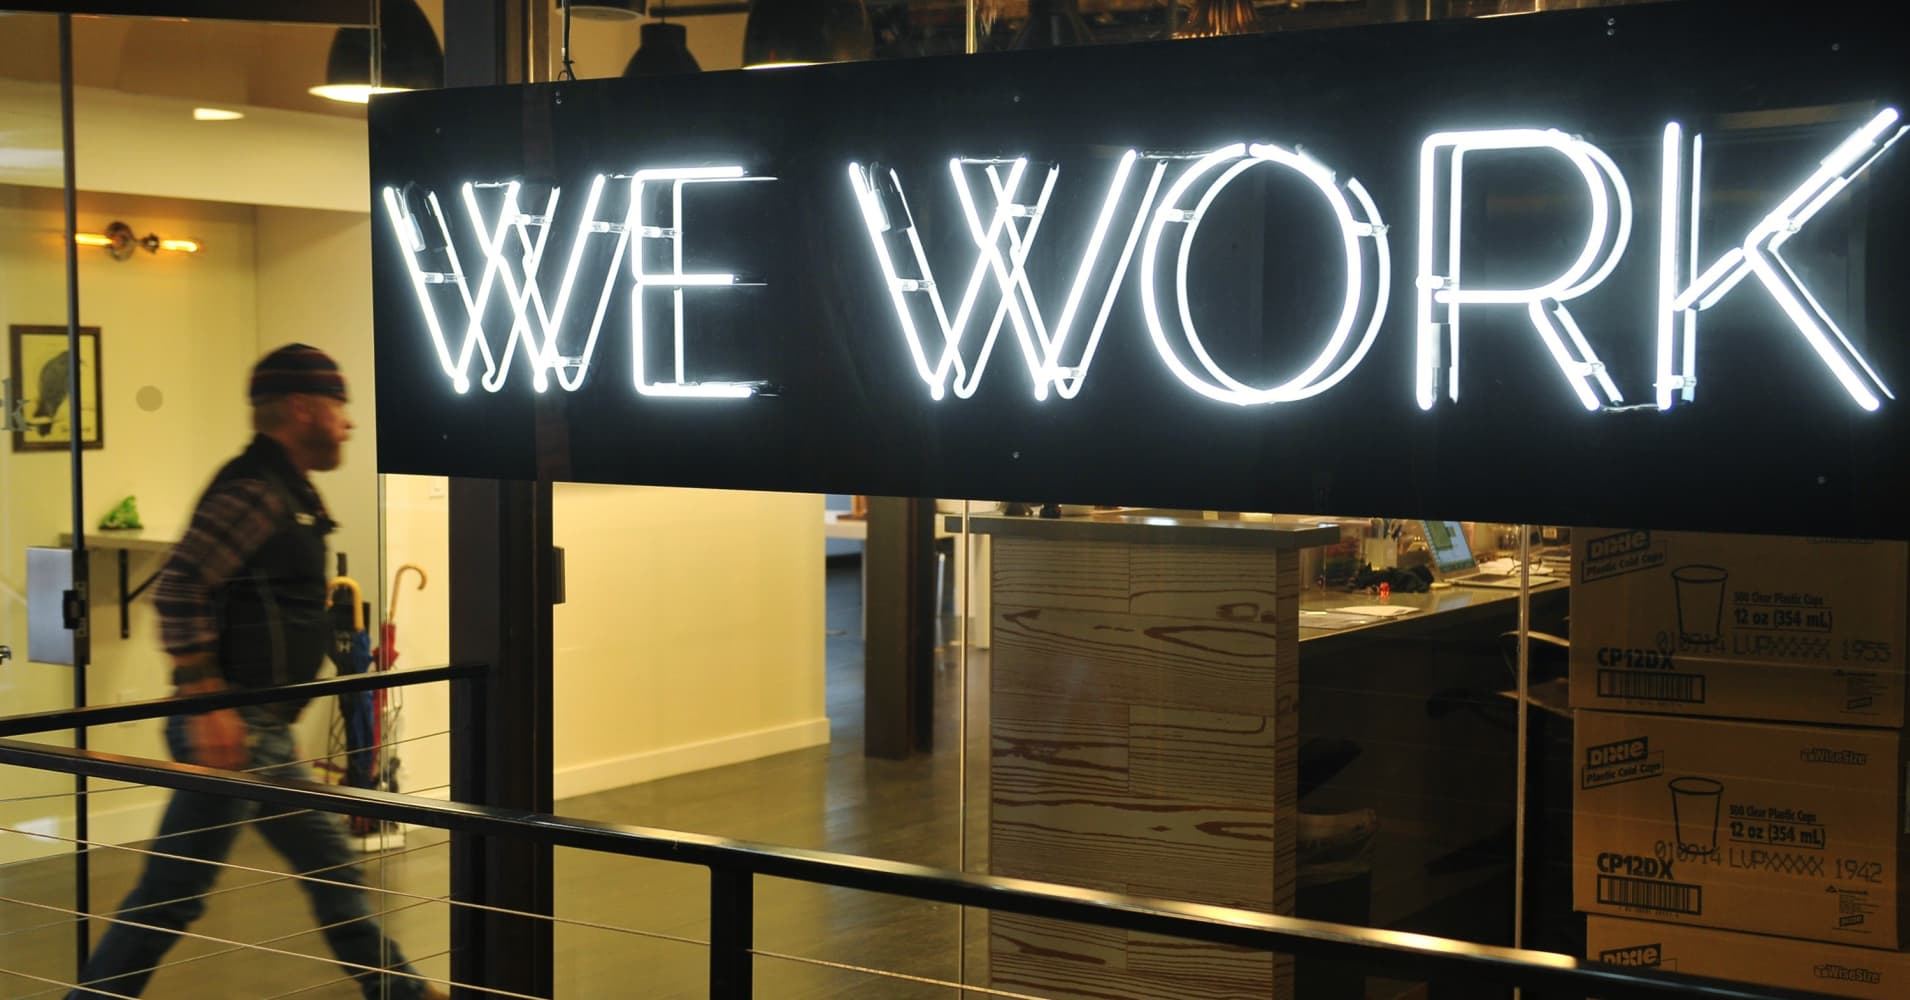 A man enter the doors of the 'WeWork' co-operative co-working space